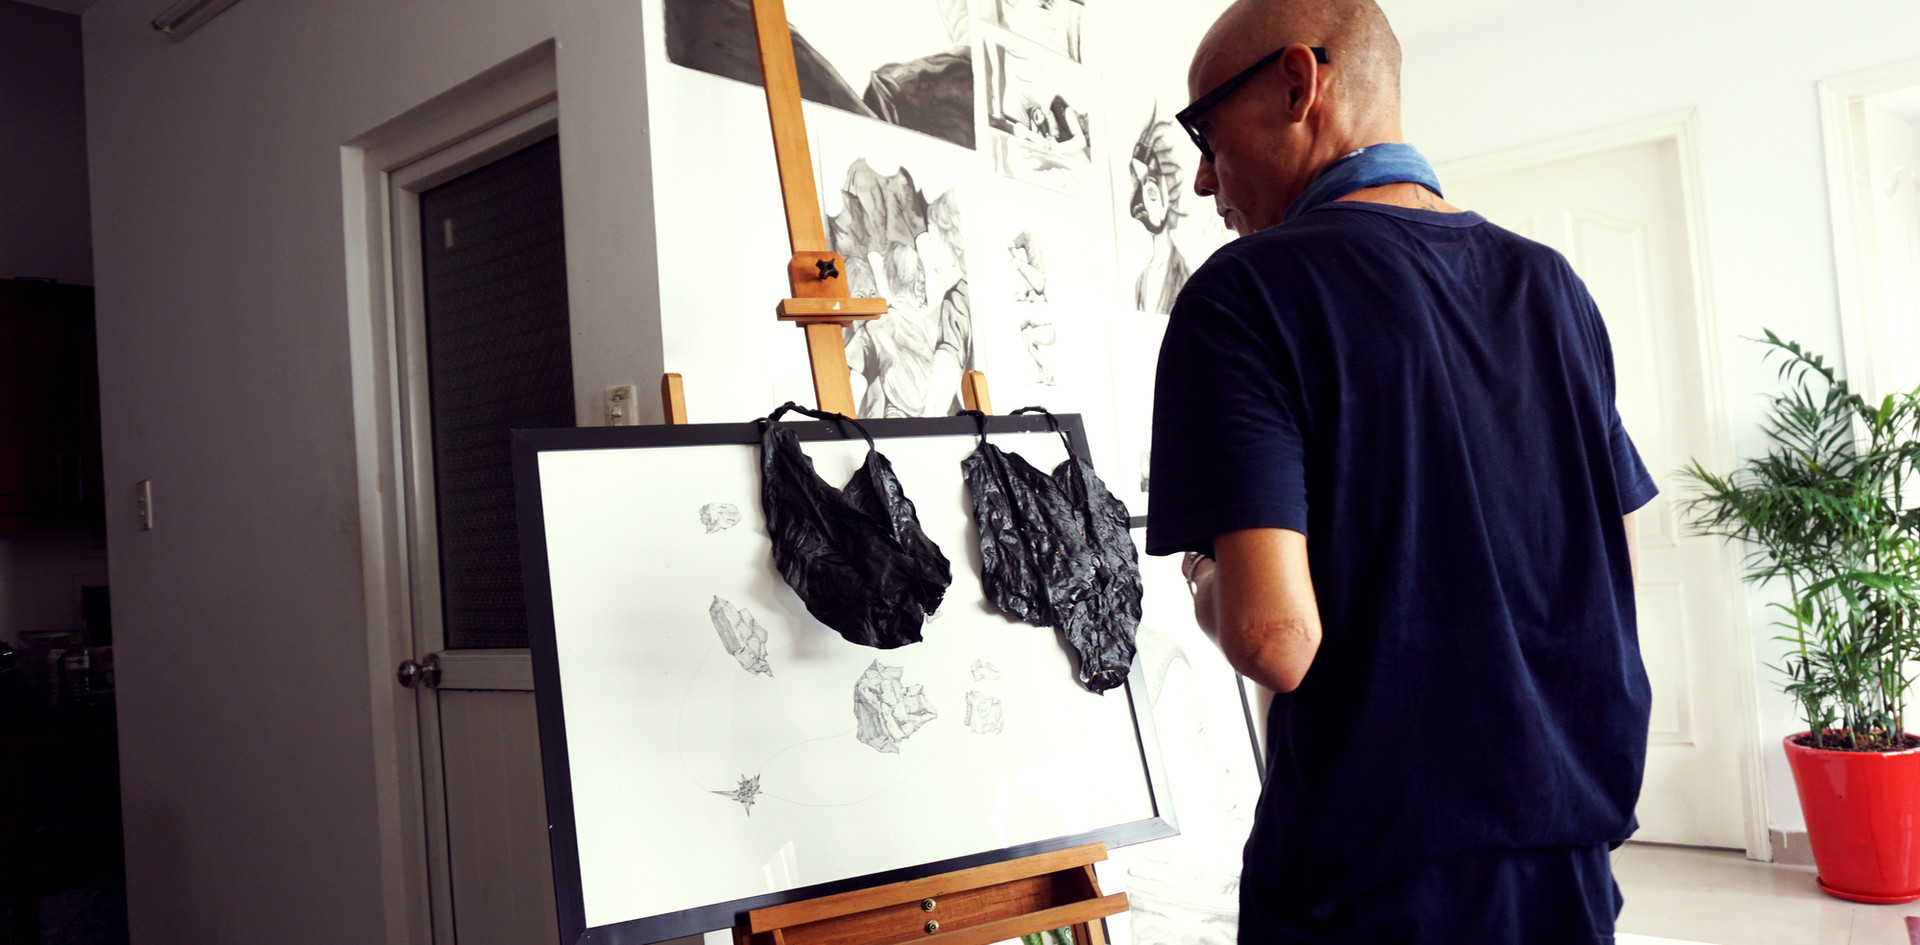 Examining the work in progress of a new series of artwork.  Photo by: Linh Phan